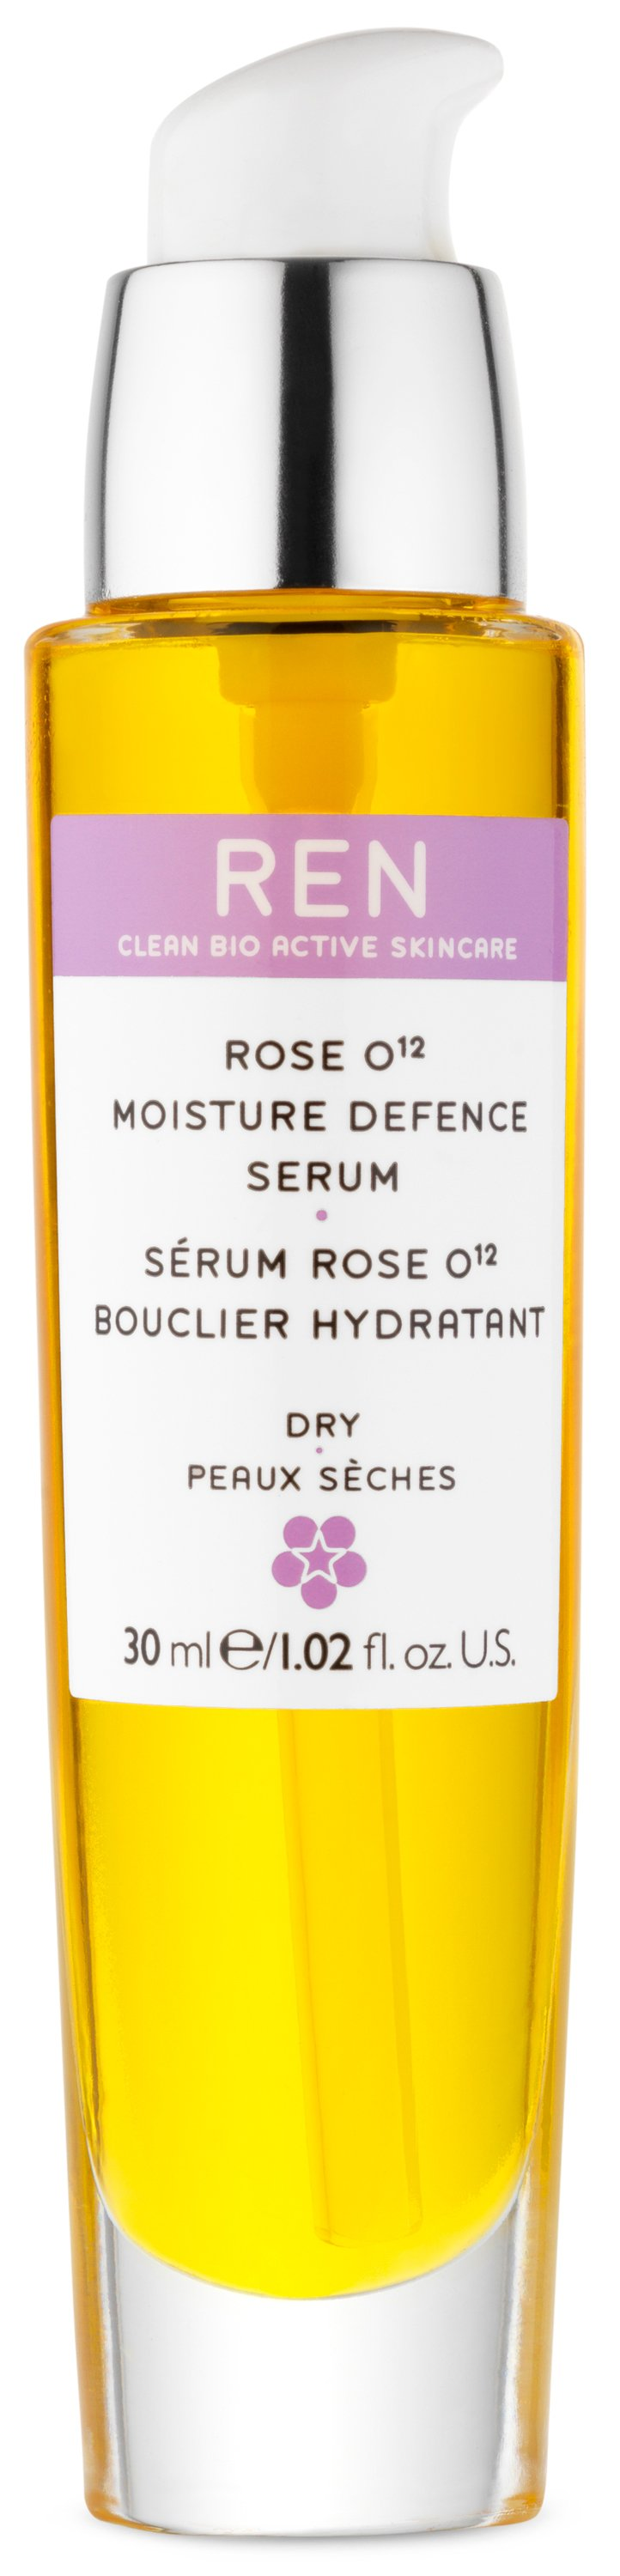 REN - Dry Skin Rose O12 Moisture Defence Oil 30 ml